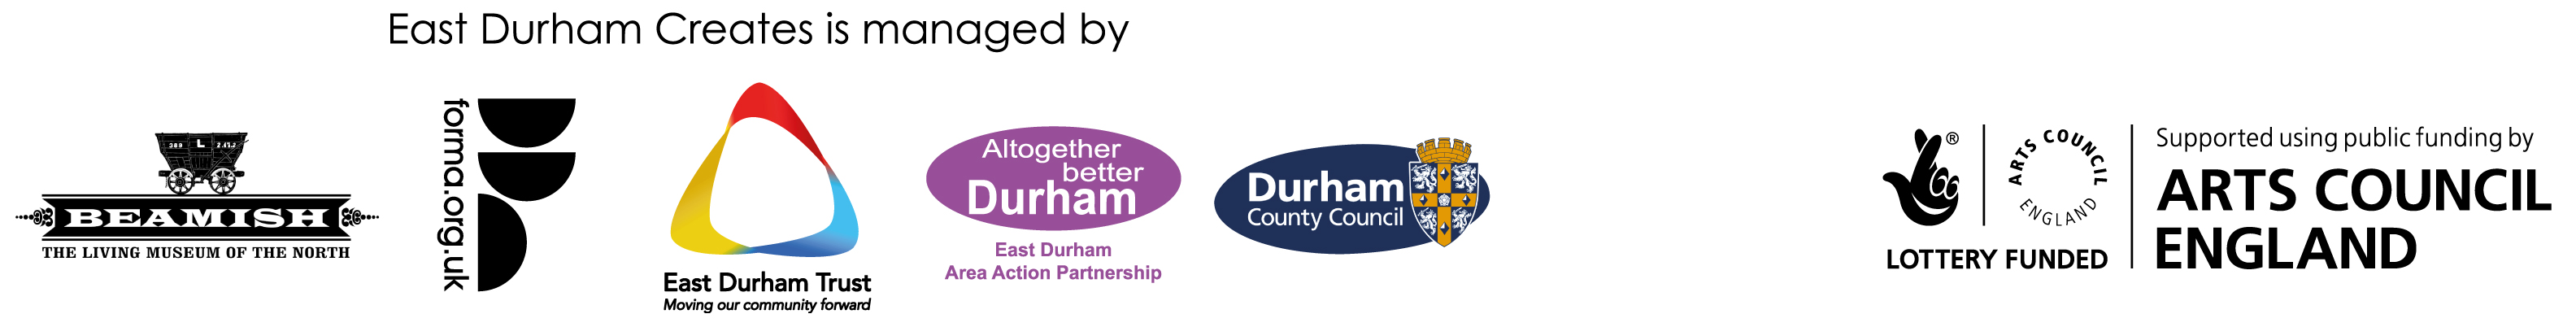 East Durham Partner Logo